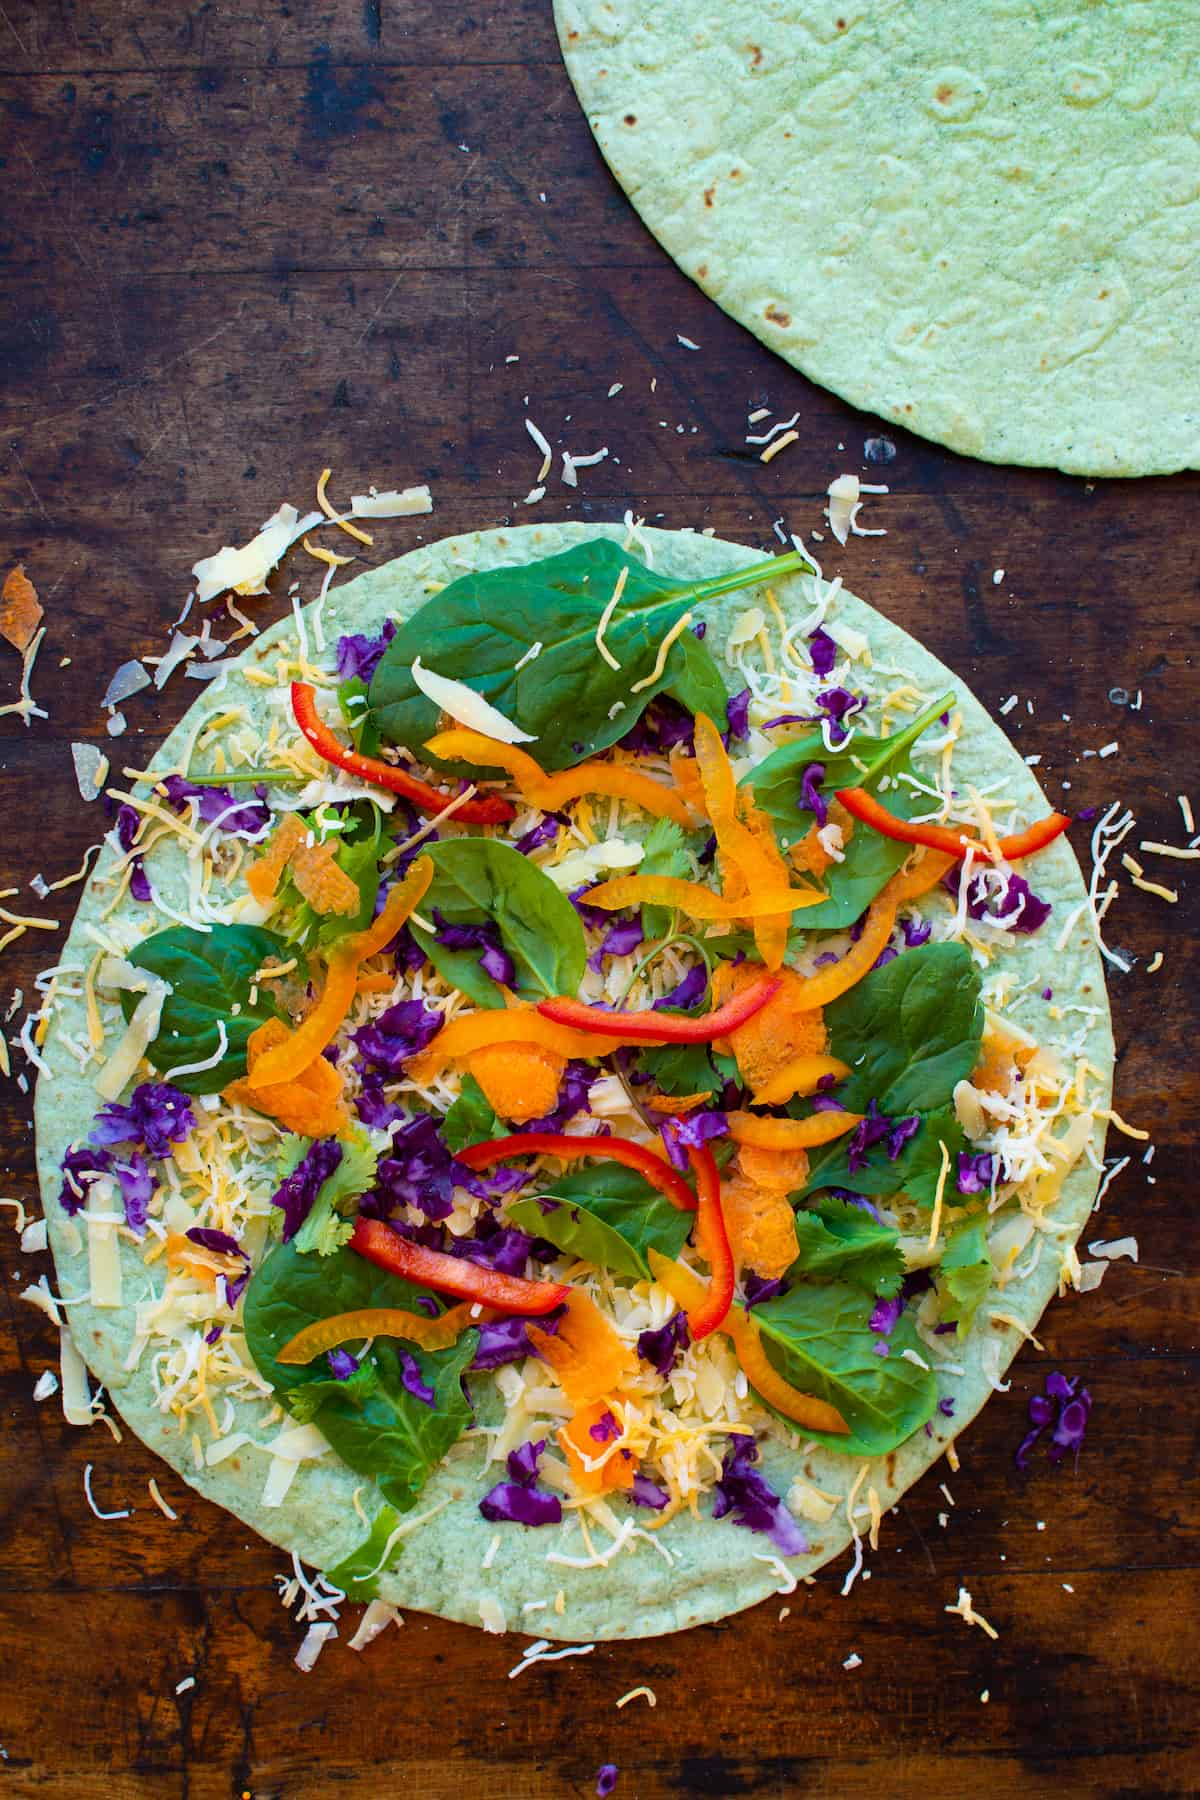 Overhead image of a veggie quesadilla with shredded cheese on a spinach flour tortilla sitting on a wood table.